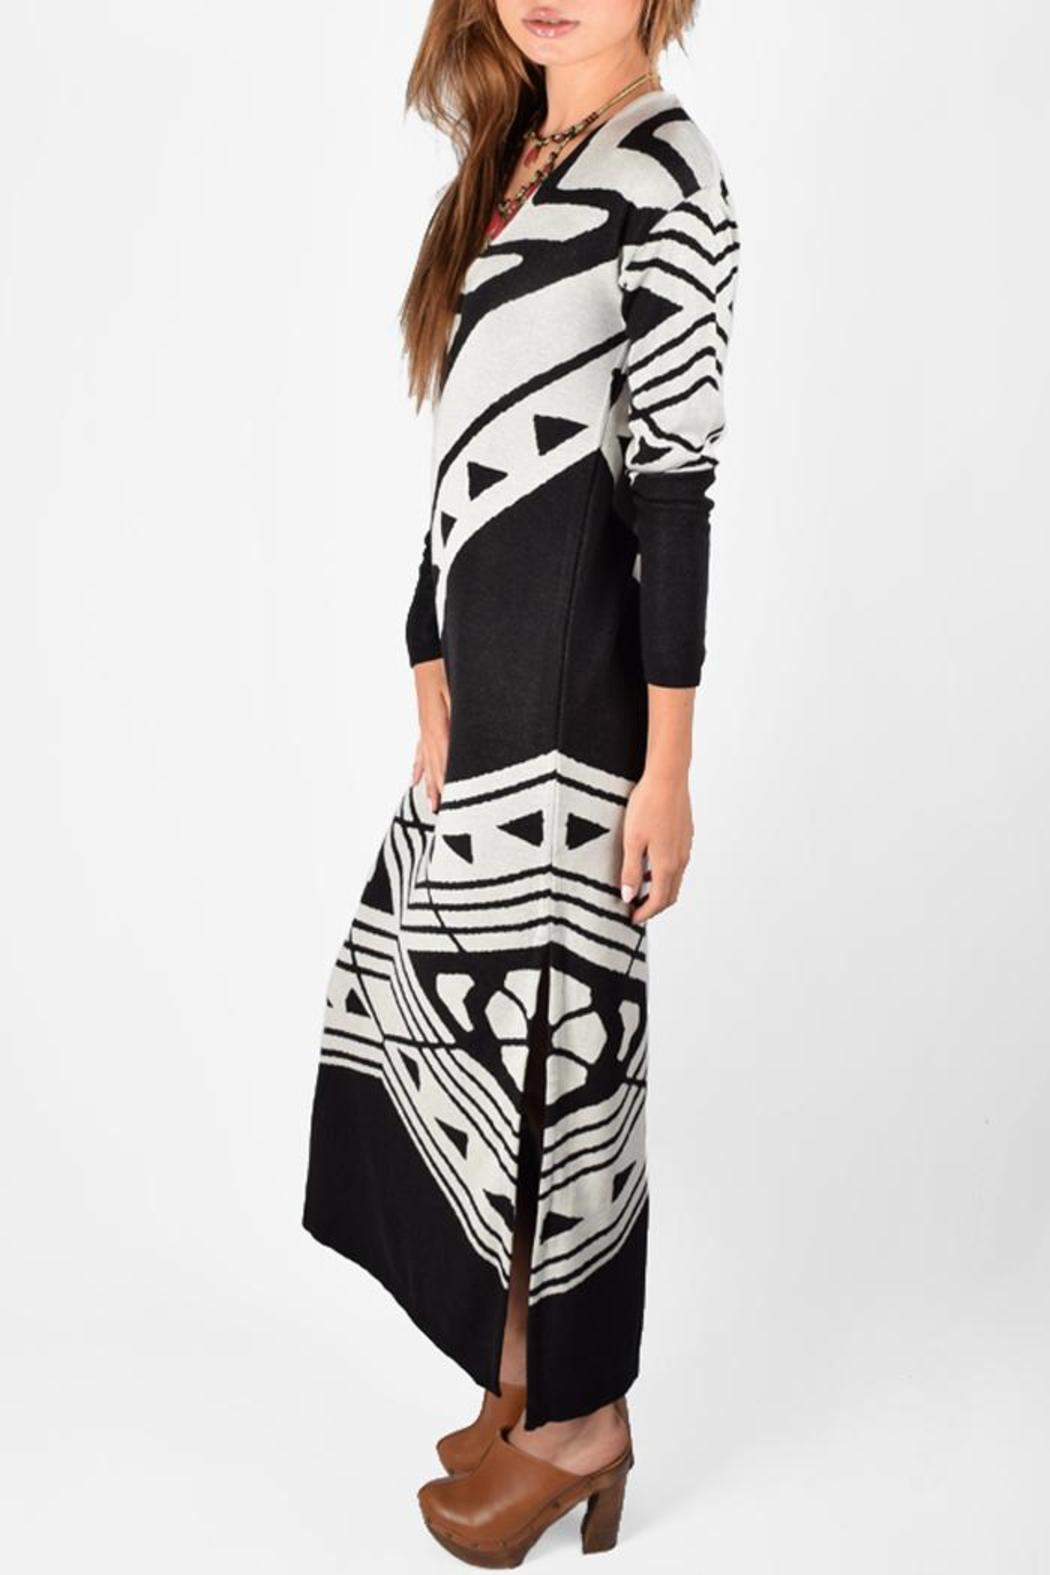 free people bauhaus swit dress from california by punch